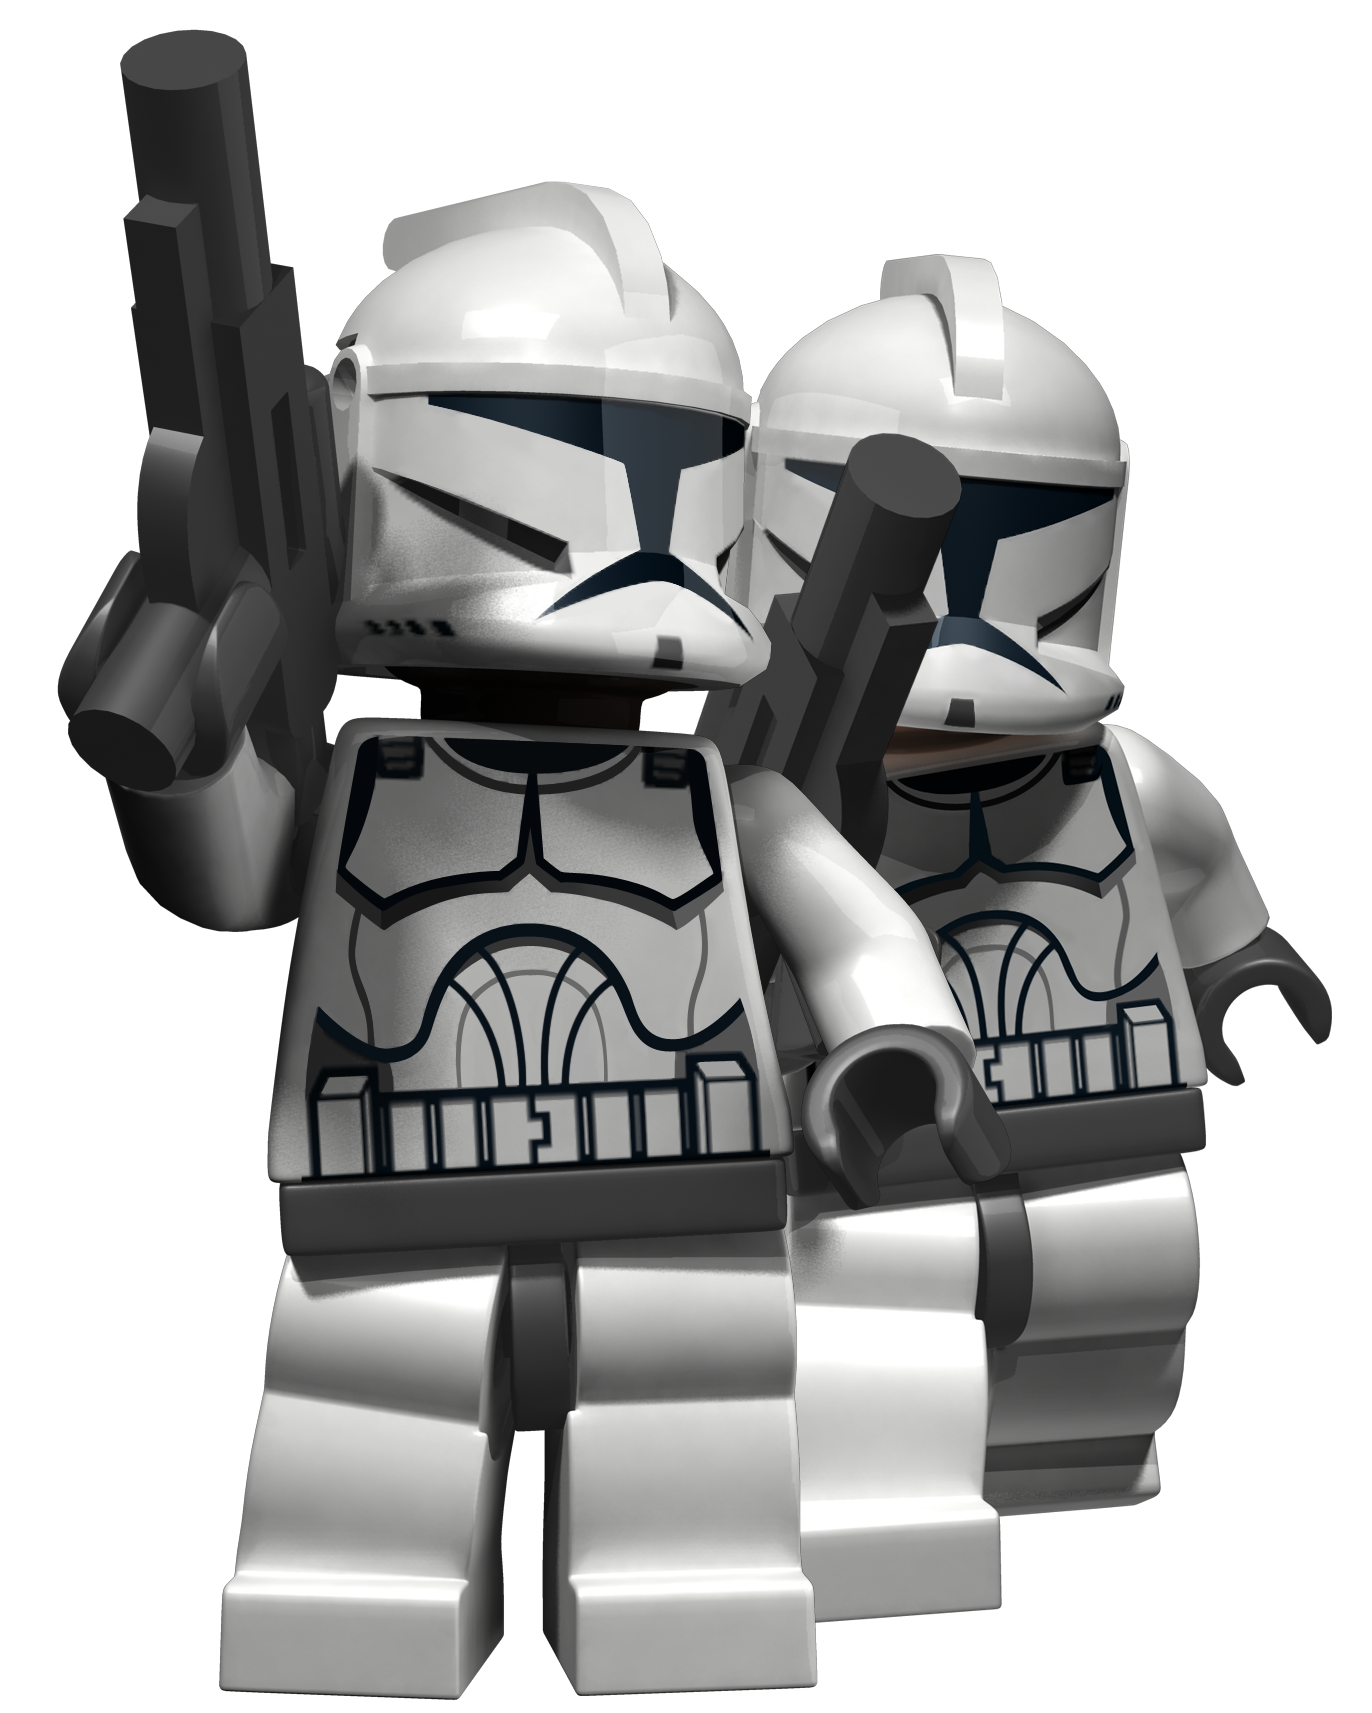 clone trooper lego star wars wiki fandom powered by wikia